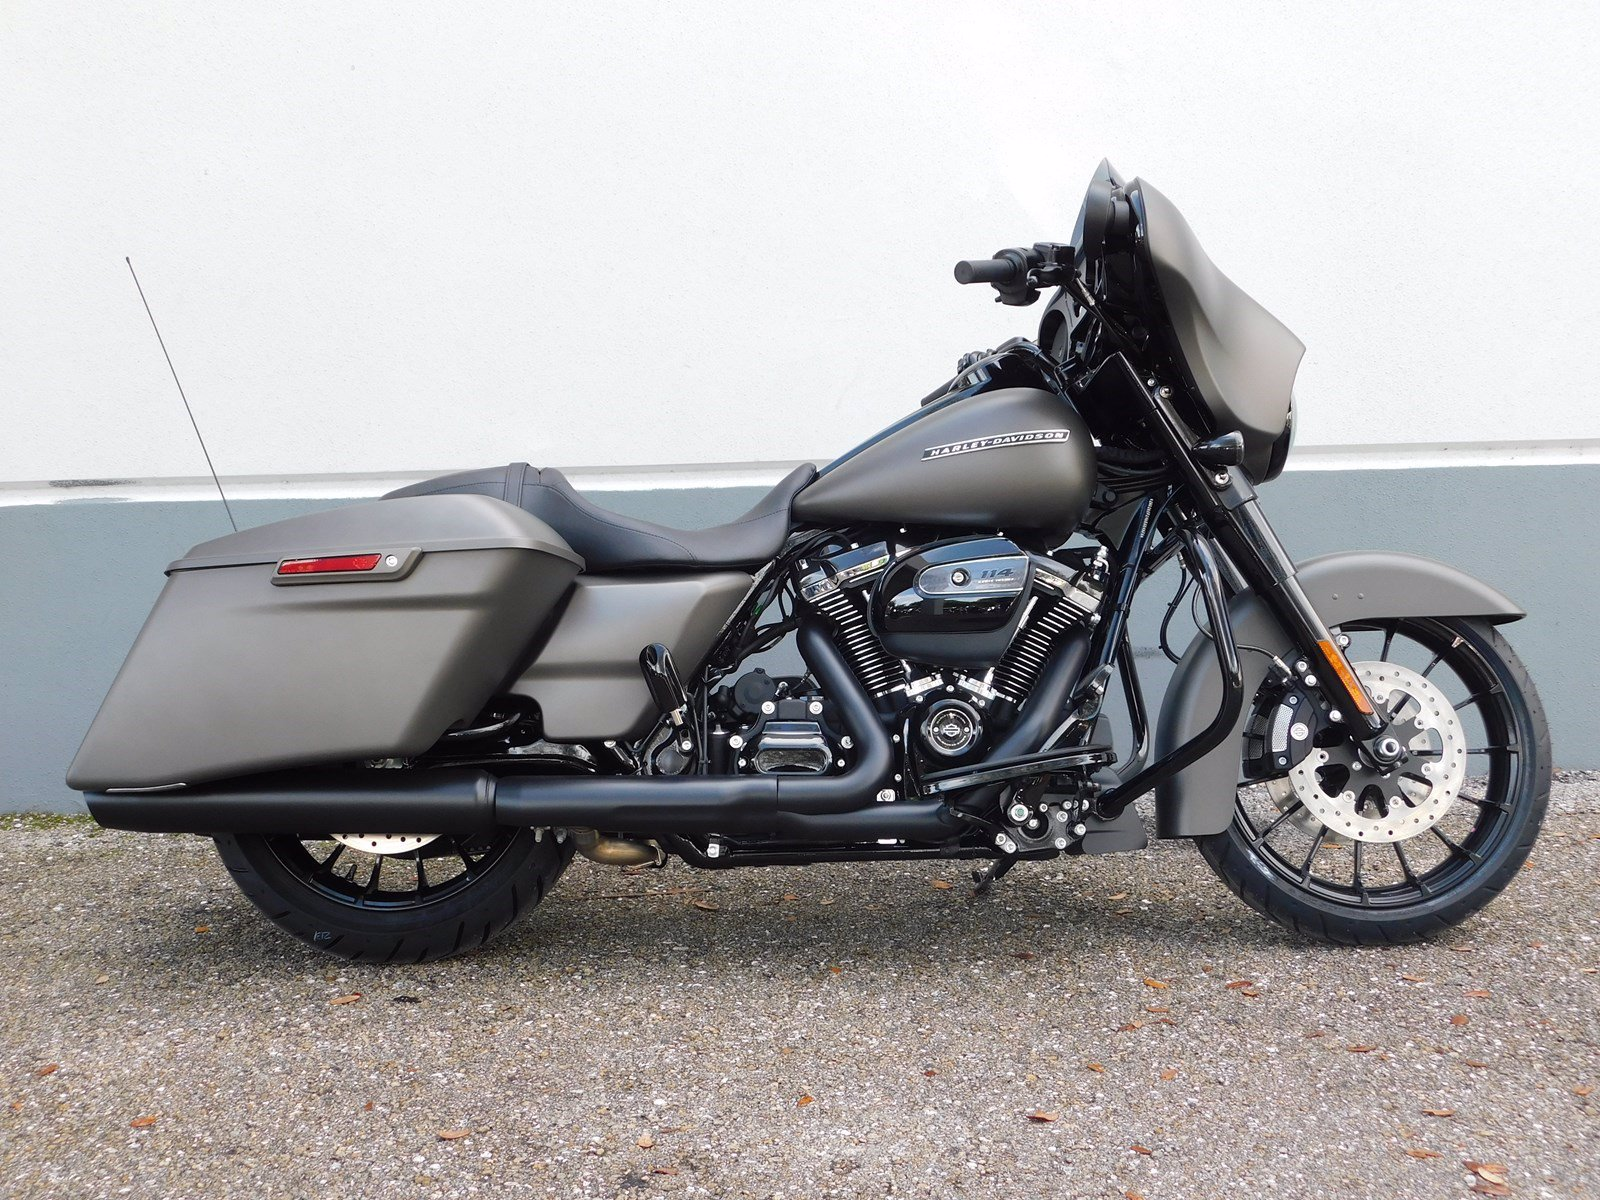 New 2019 Harley-Davidson Street Glide Special FLHXS